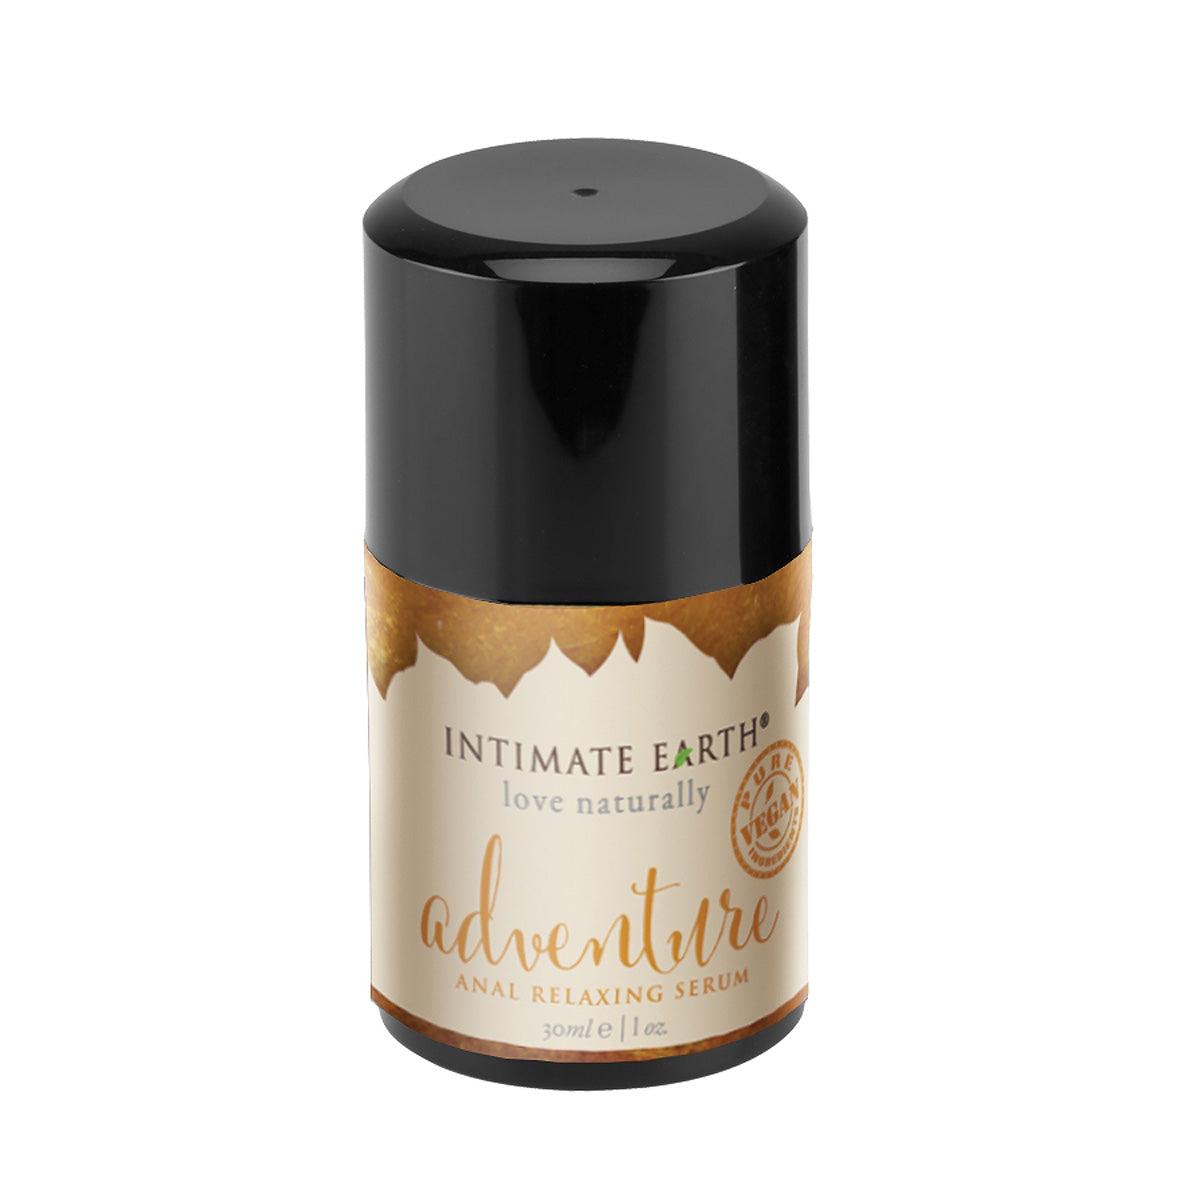 Intimate Earth Daring Men's Anal Relaxing Serum Oils & Cream Intimate Earth Default Title